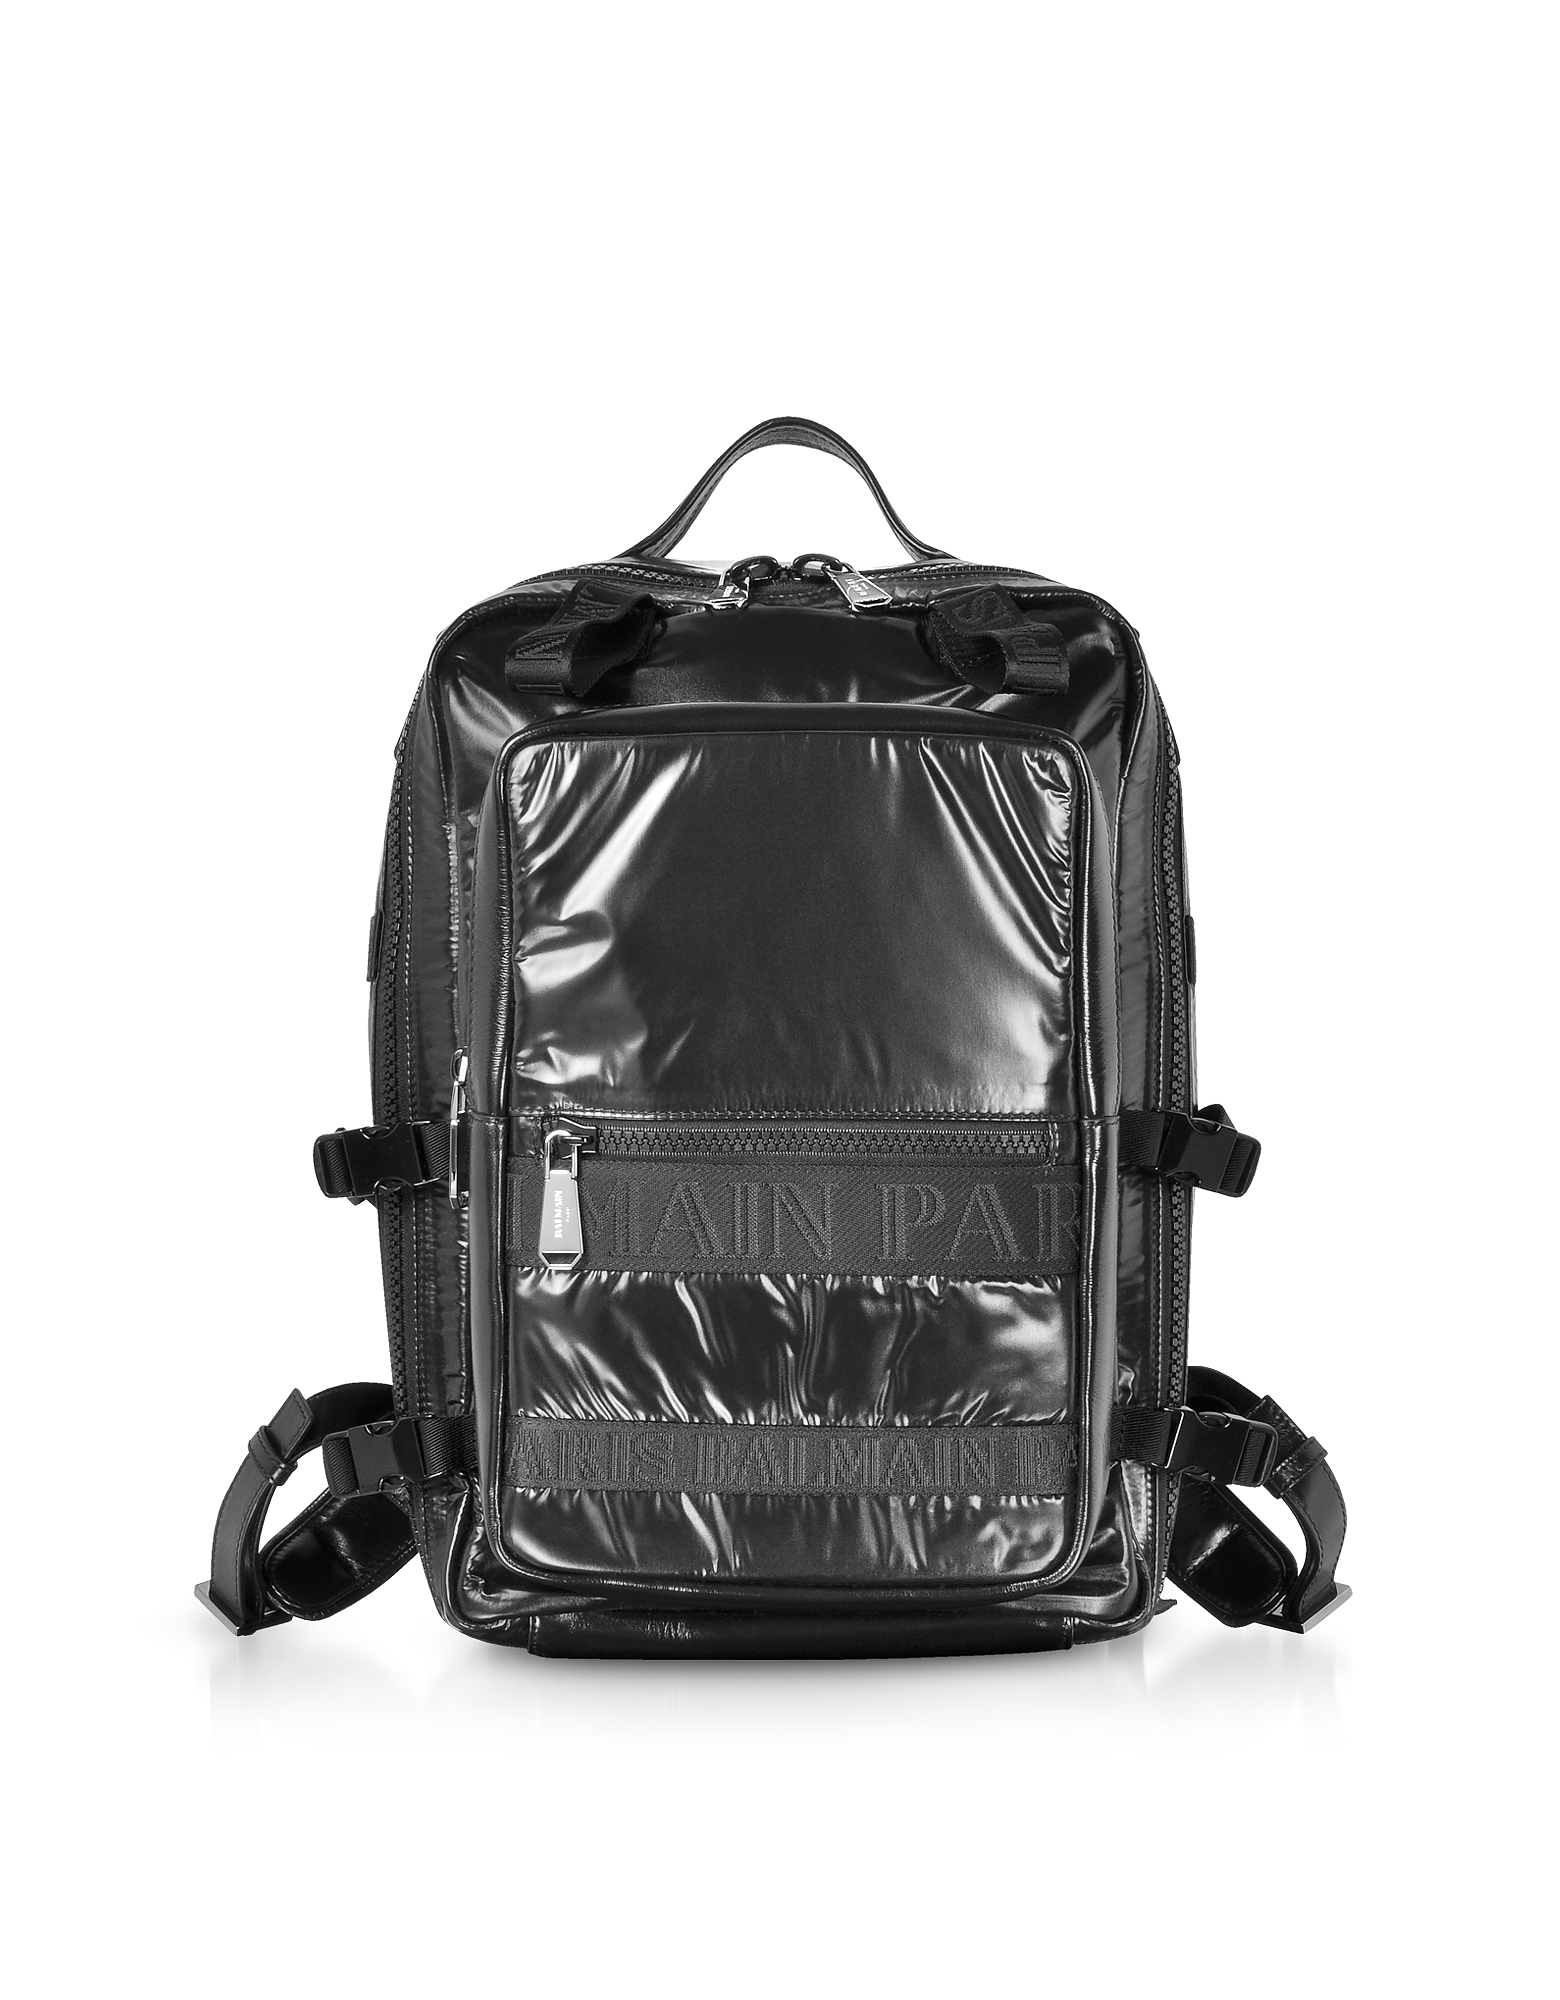 Balmain Backpacks, Black Quilted Nylon and Shiny Leather Men's Backpack